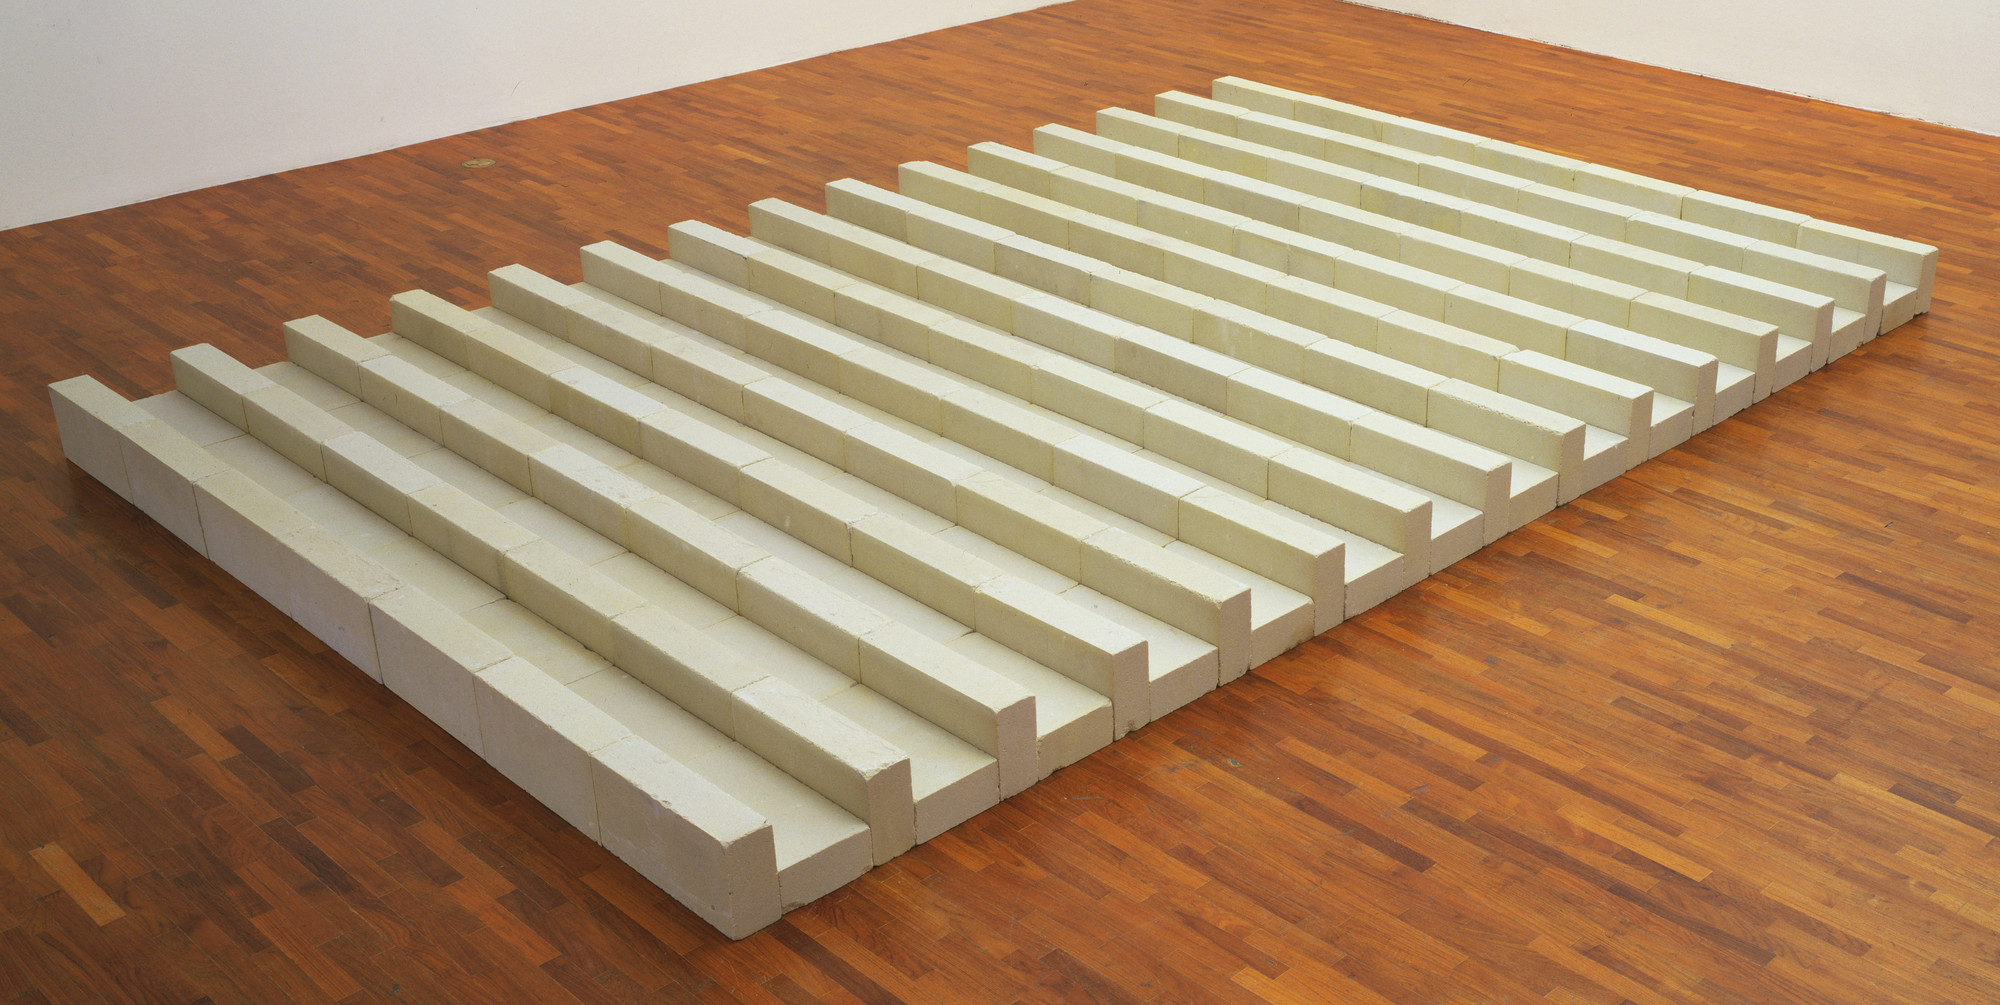 Carl Andre. Smithereens. 1984